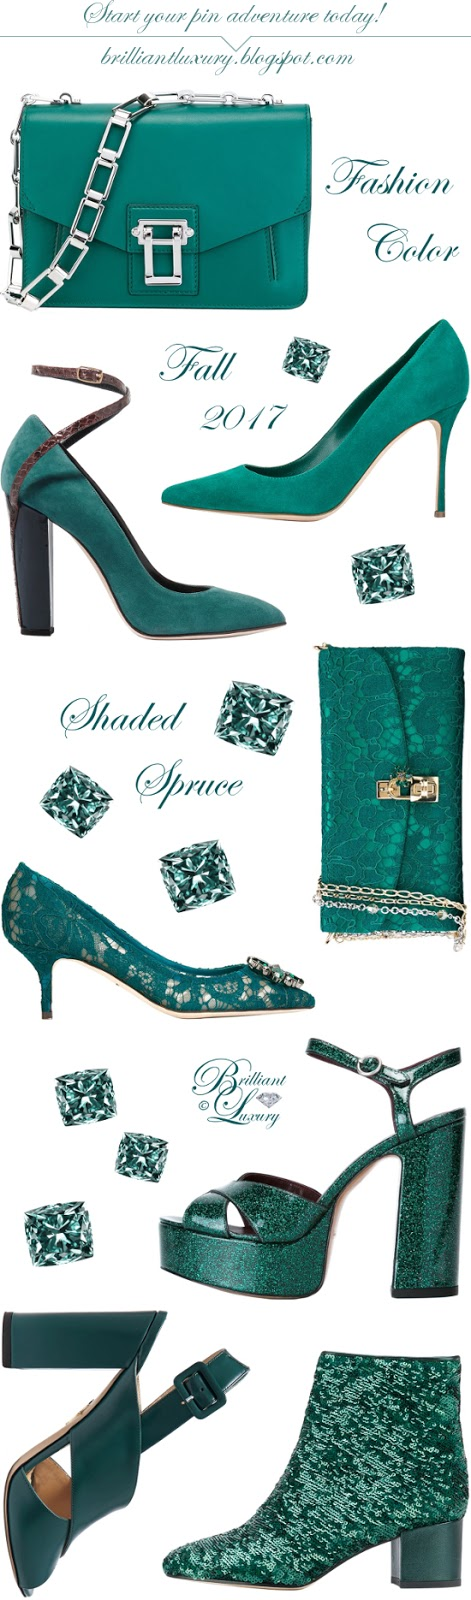 Brilliant Luxury ♦ Fashion Color Fall 2017 ~ shaded spruce